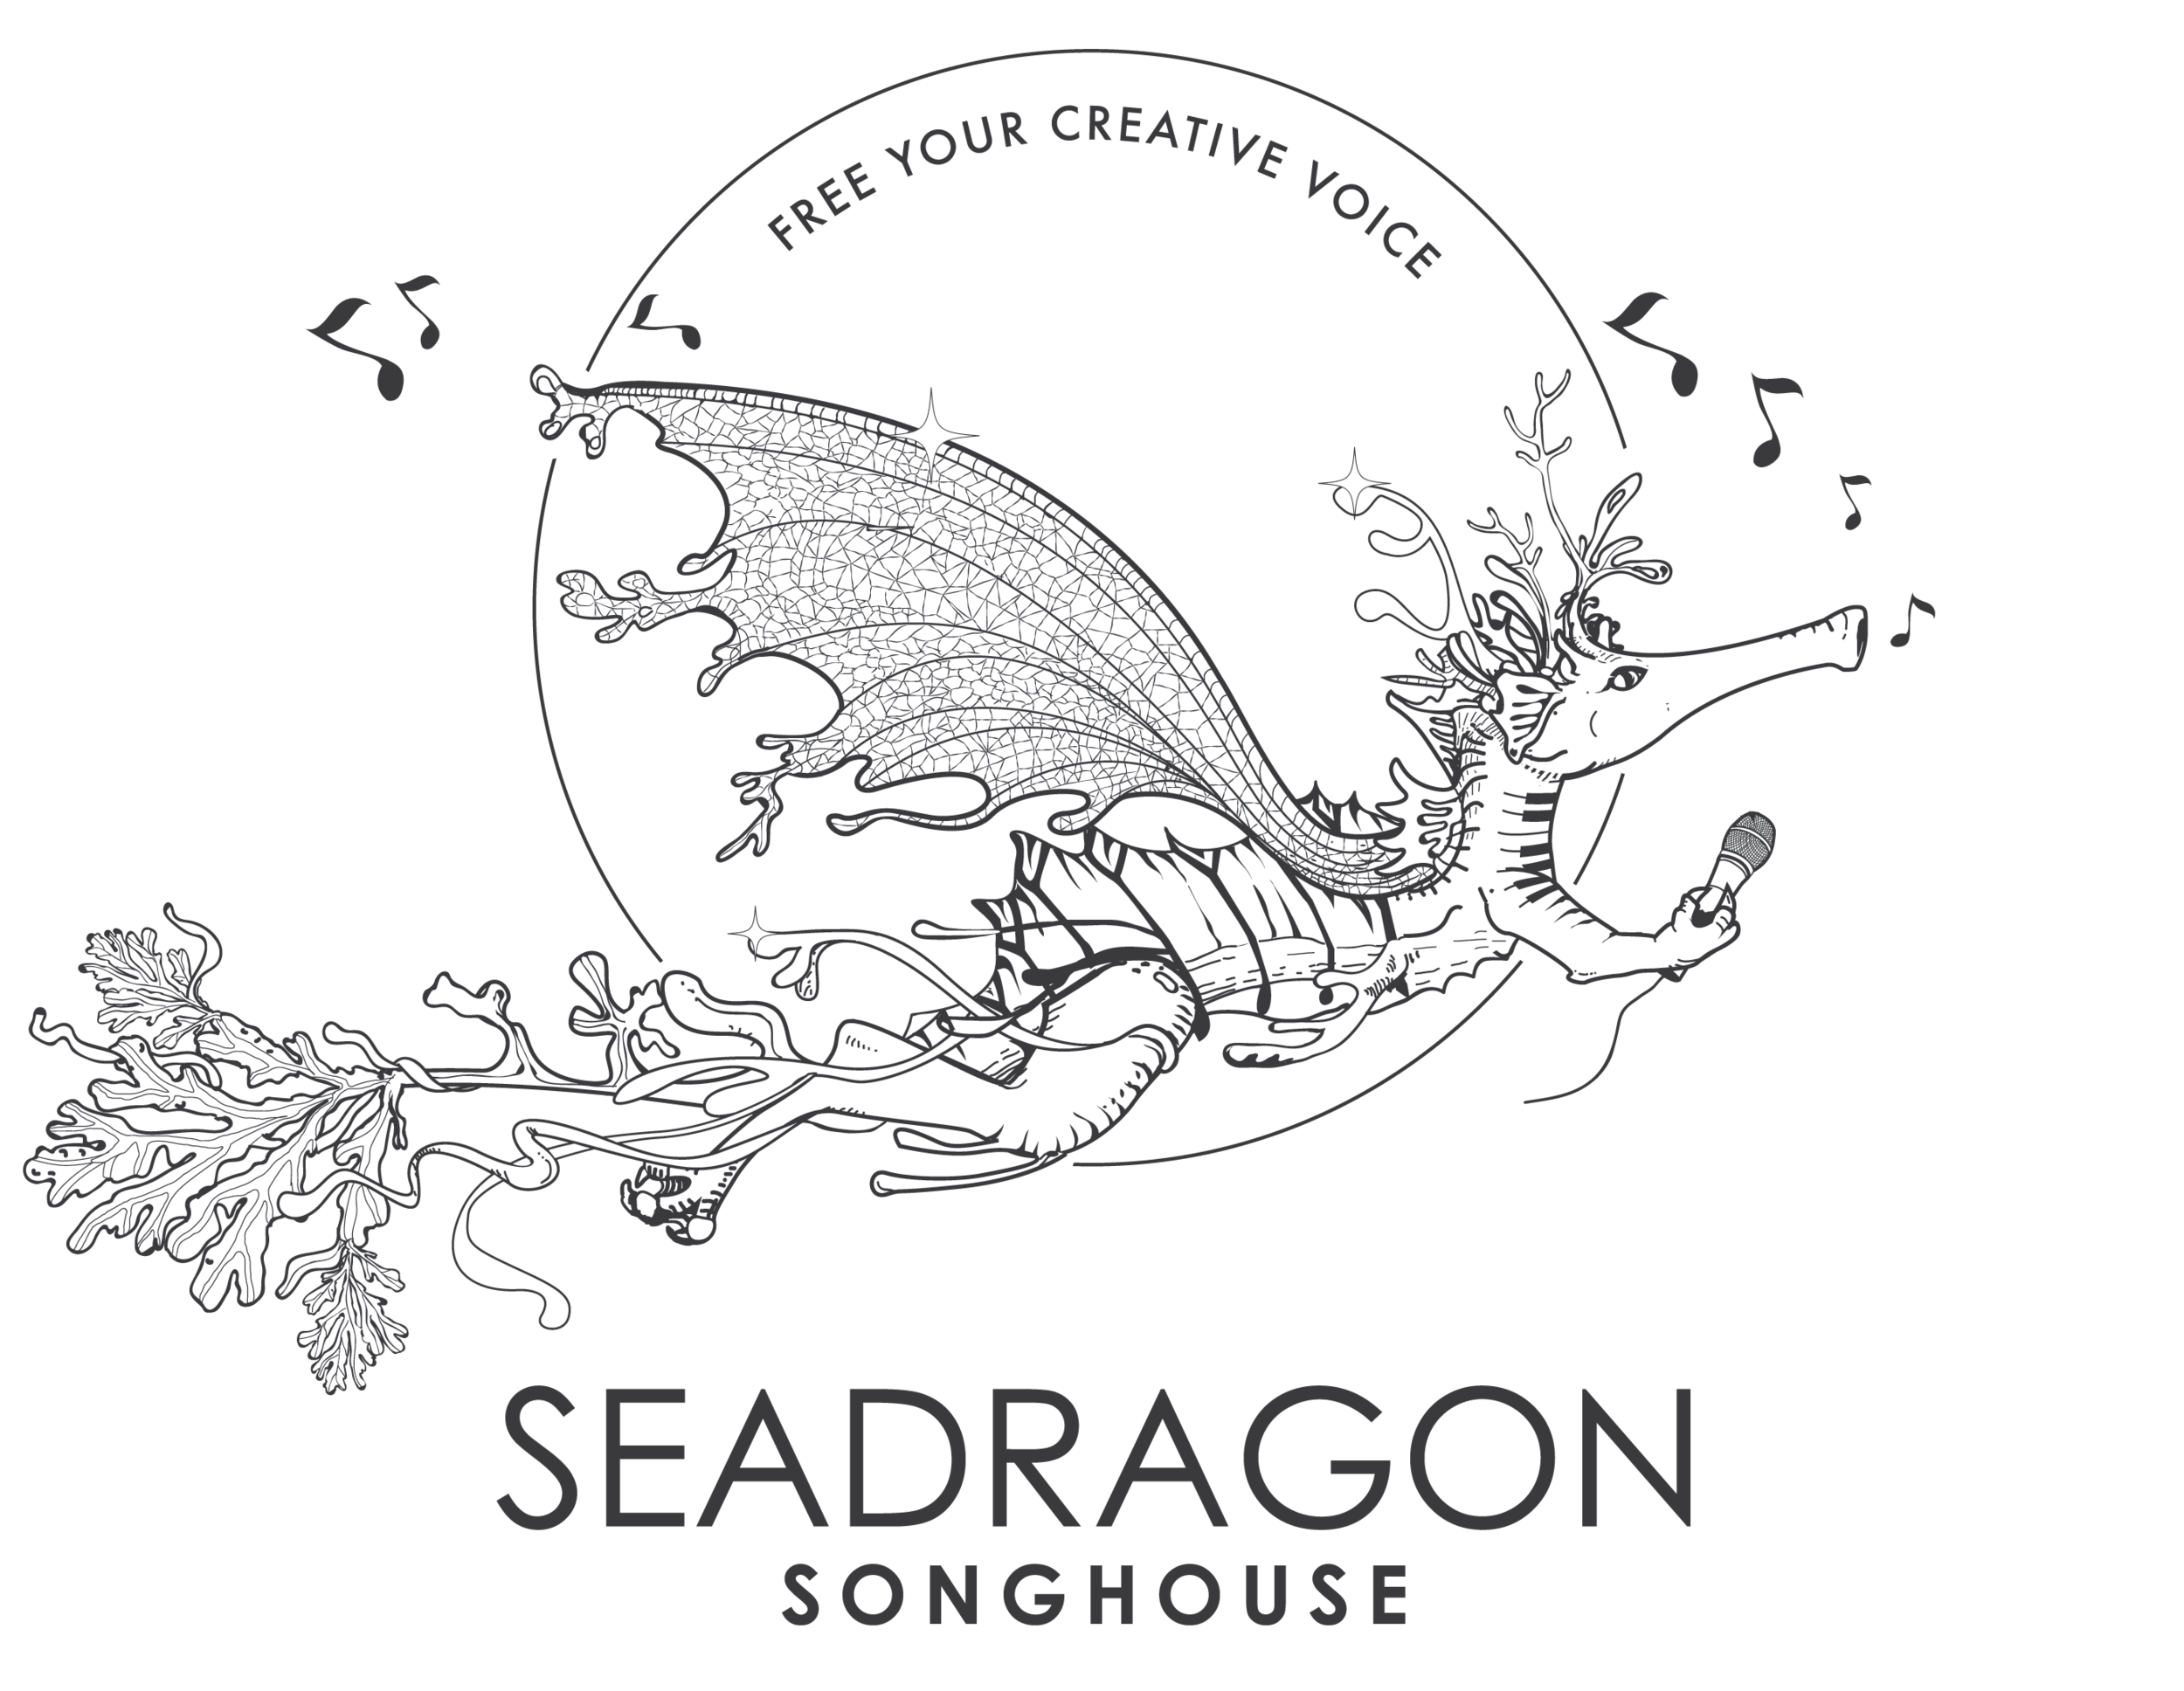 Seadragon Songhouse